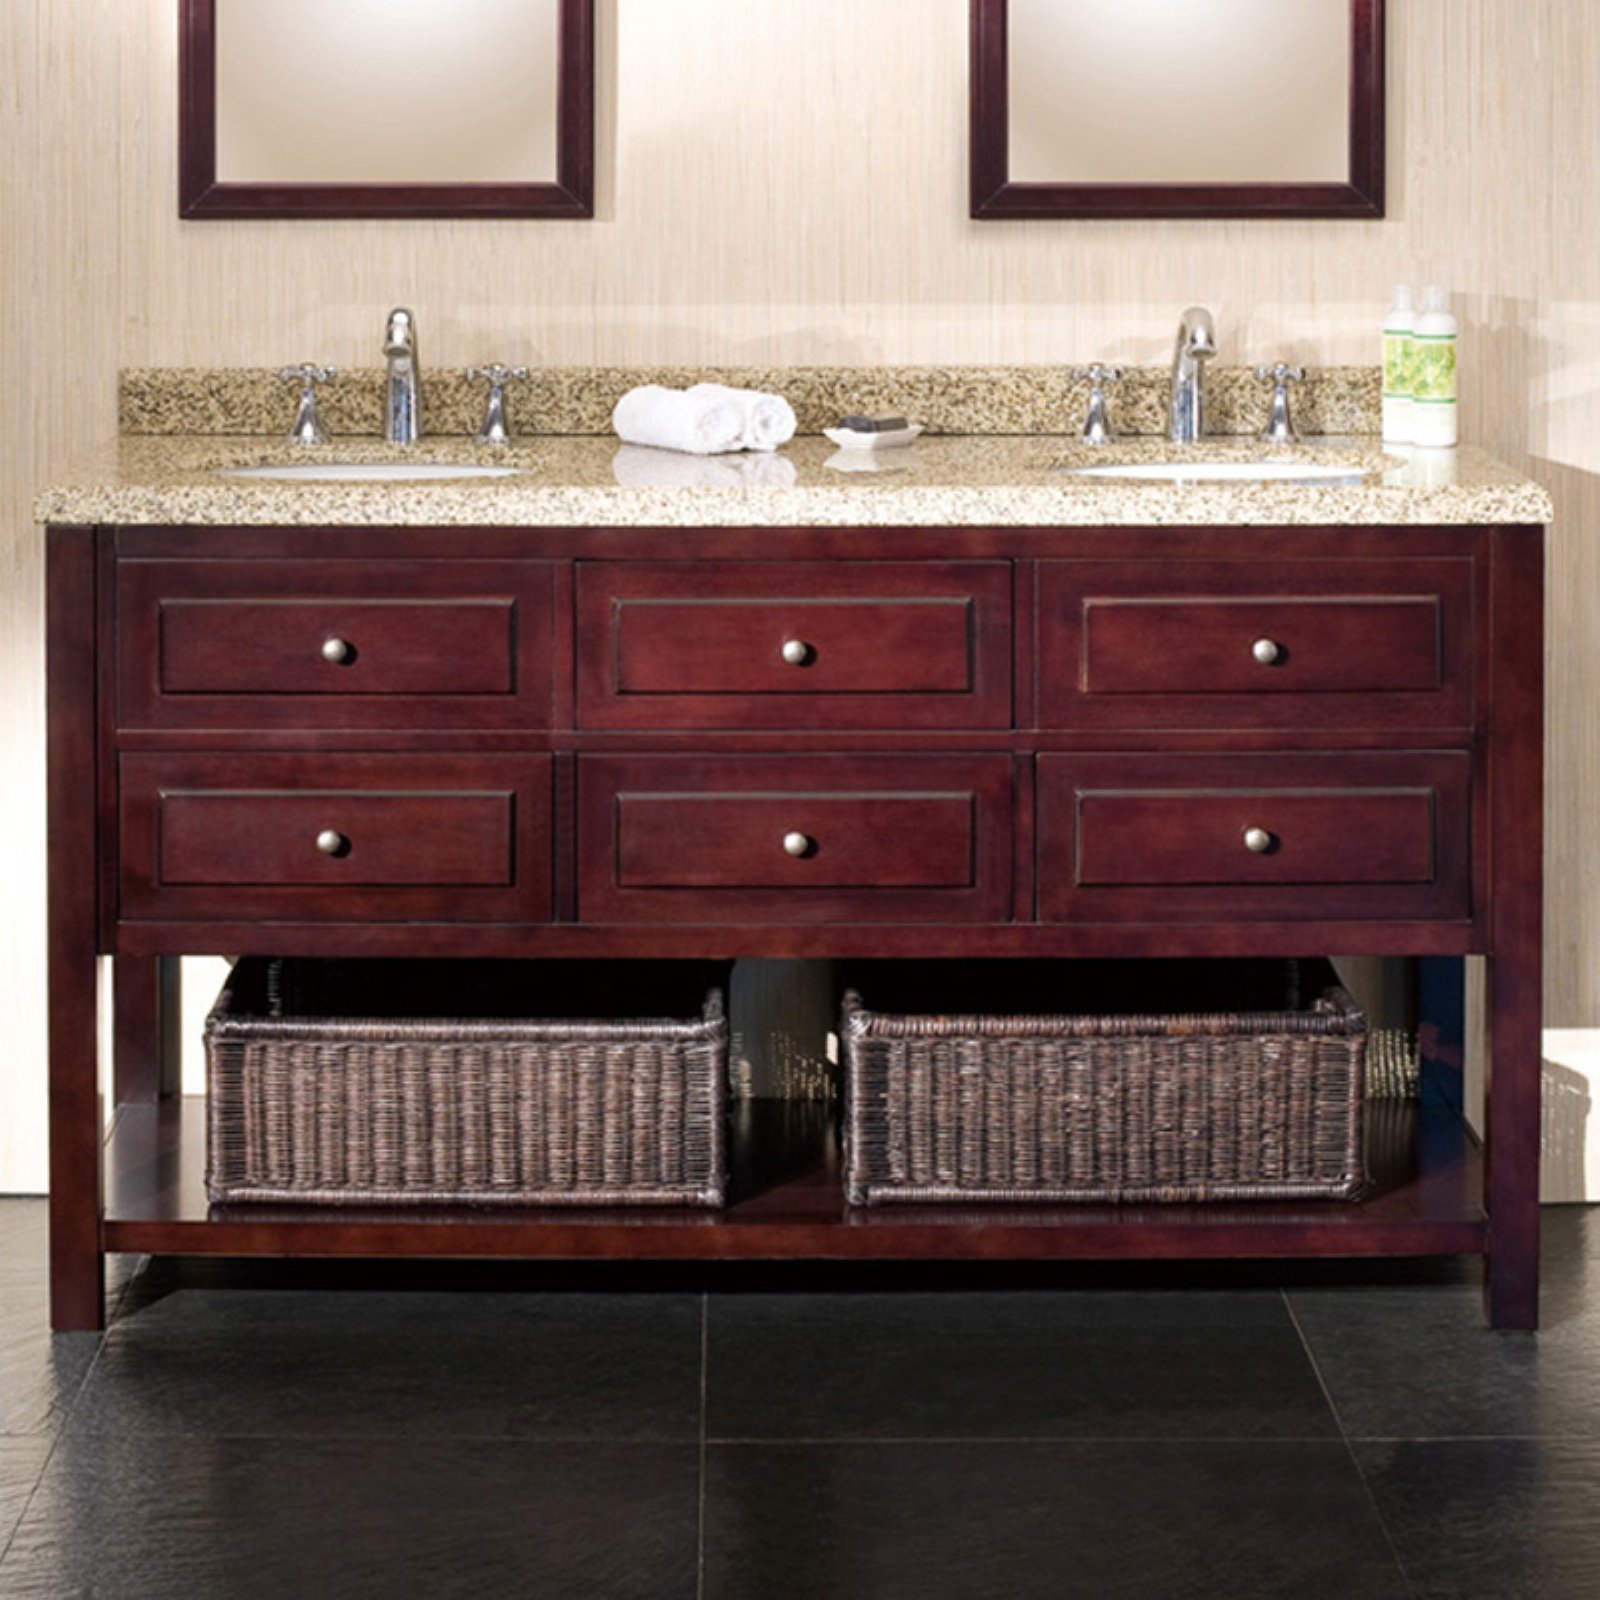 Ove Decors Danny 60-in. Double Bathroom Vanity - Walmart.com